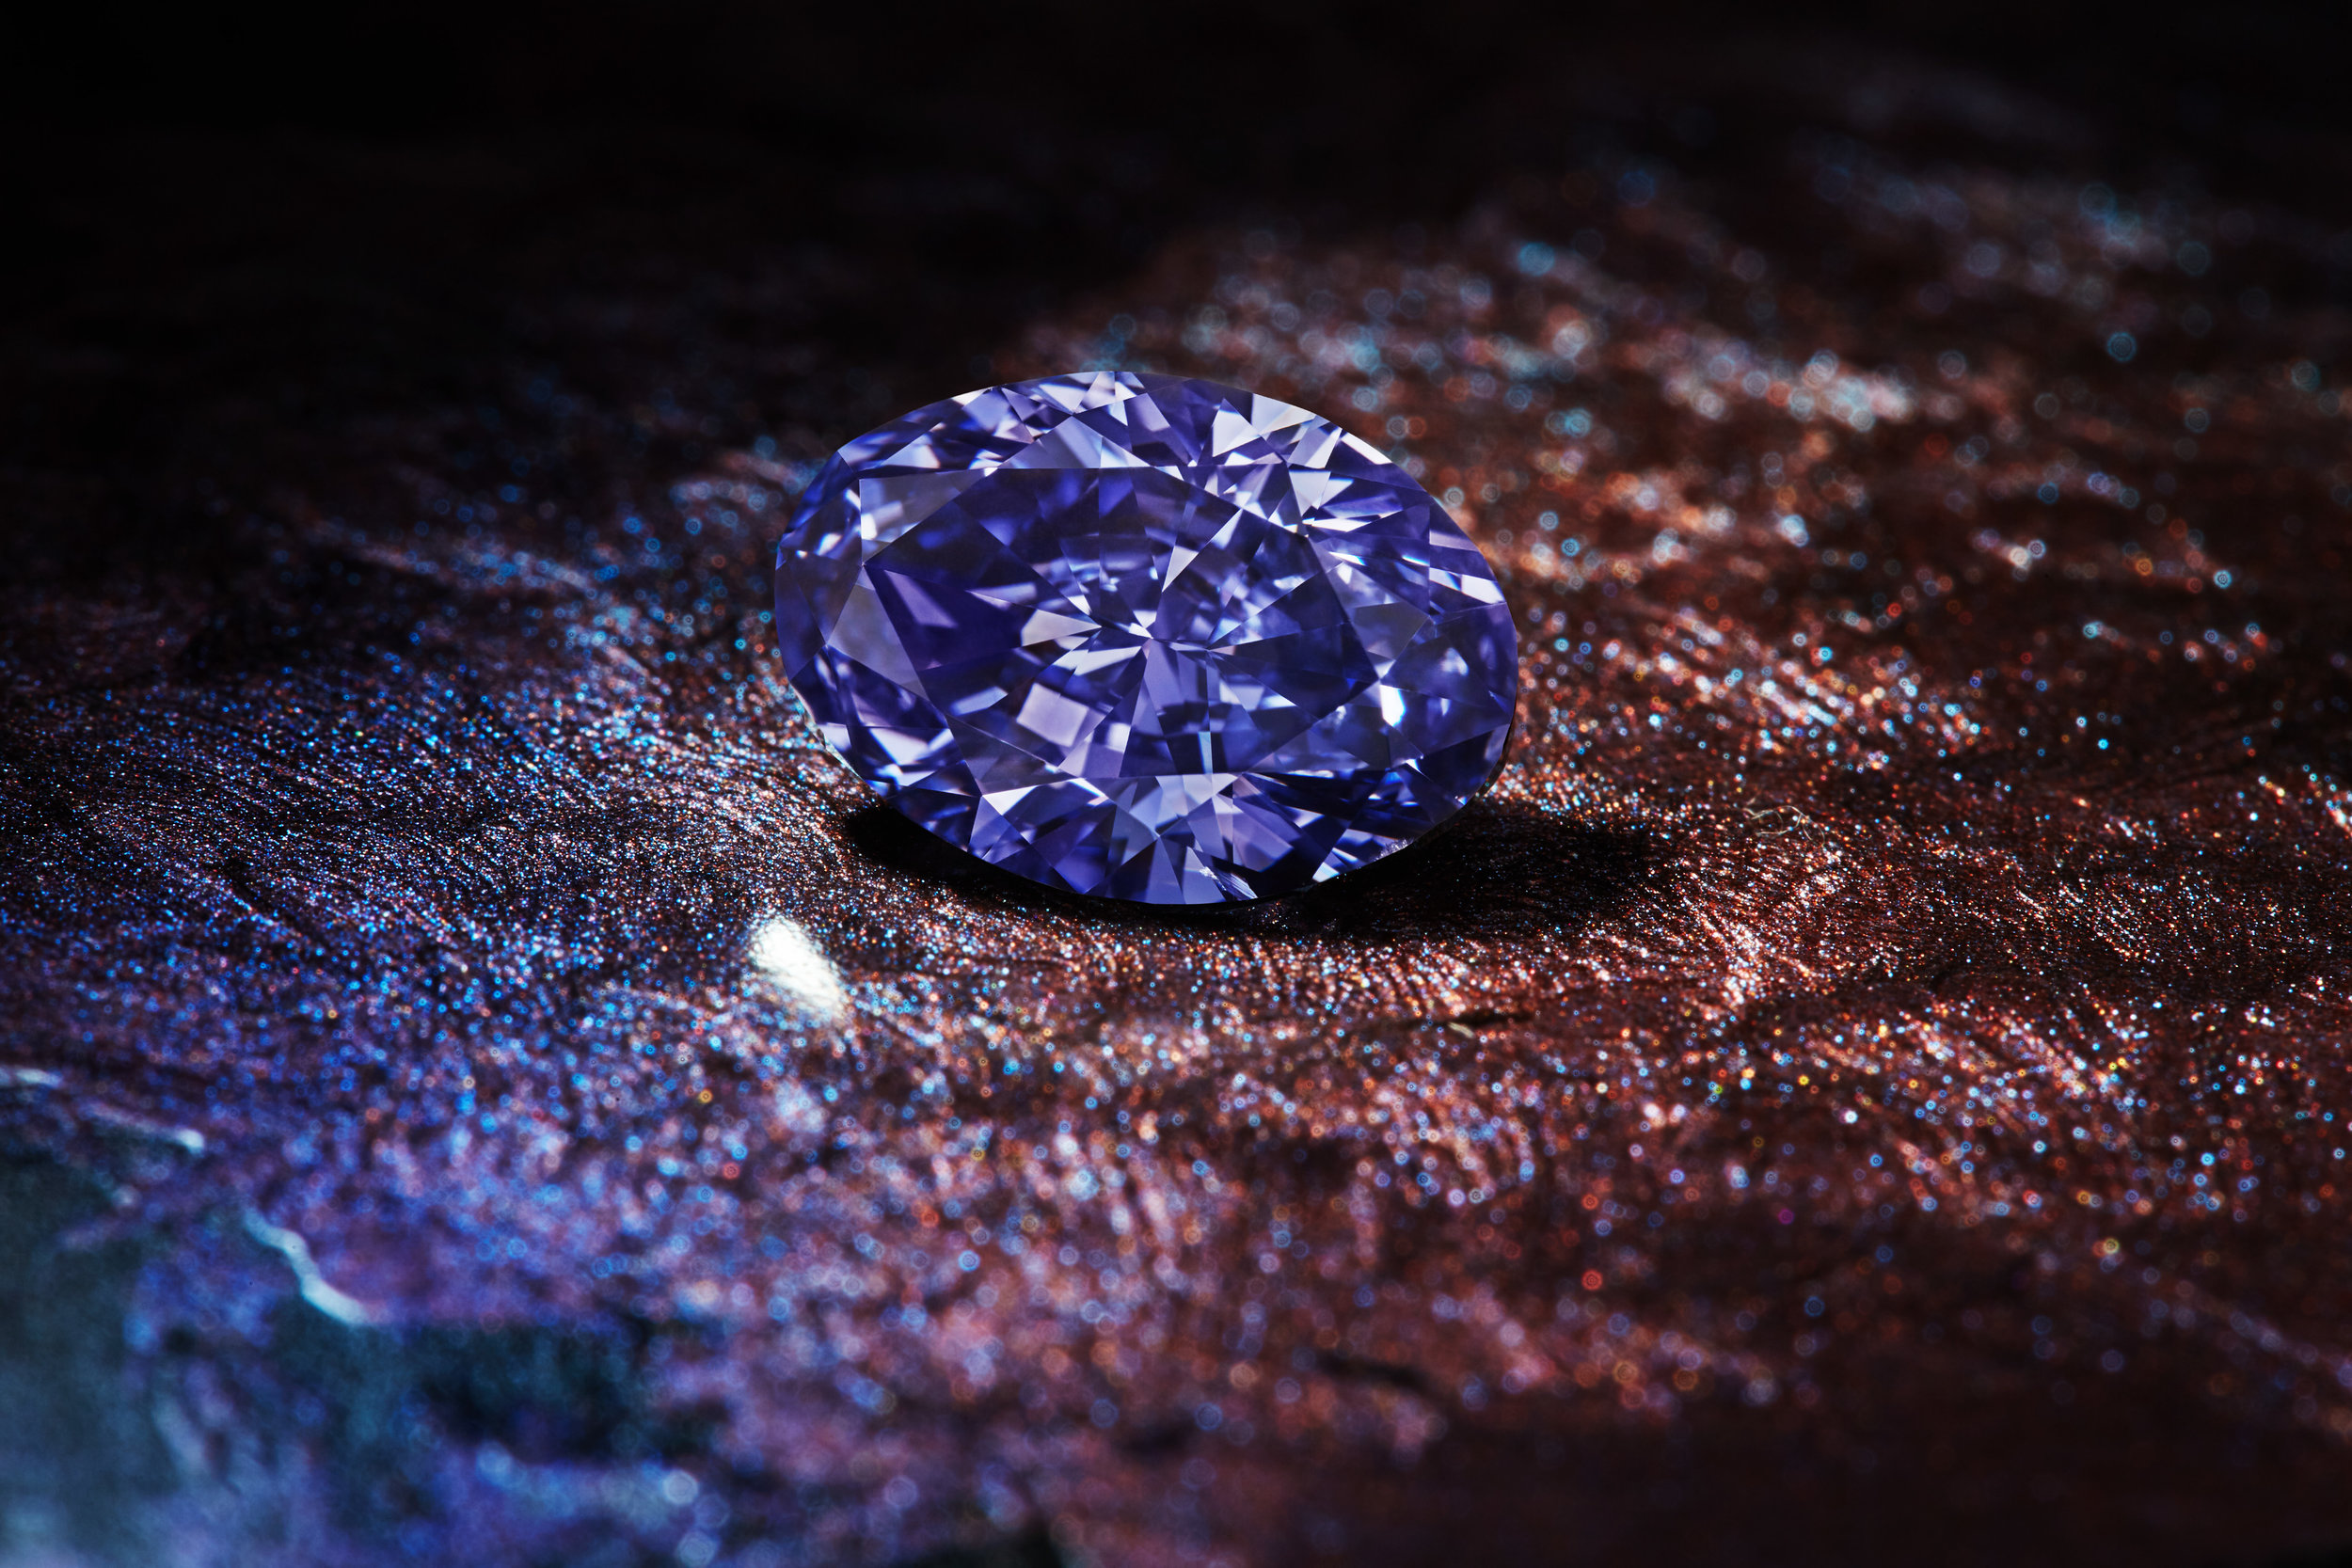 The 2.83-carat Argyle Violet, is the largest and most valuable violet diamond recovered to date from the Argyle mine